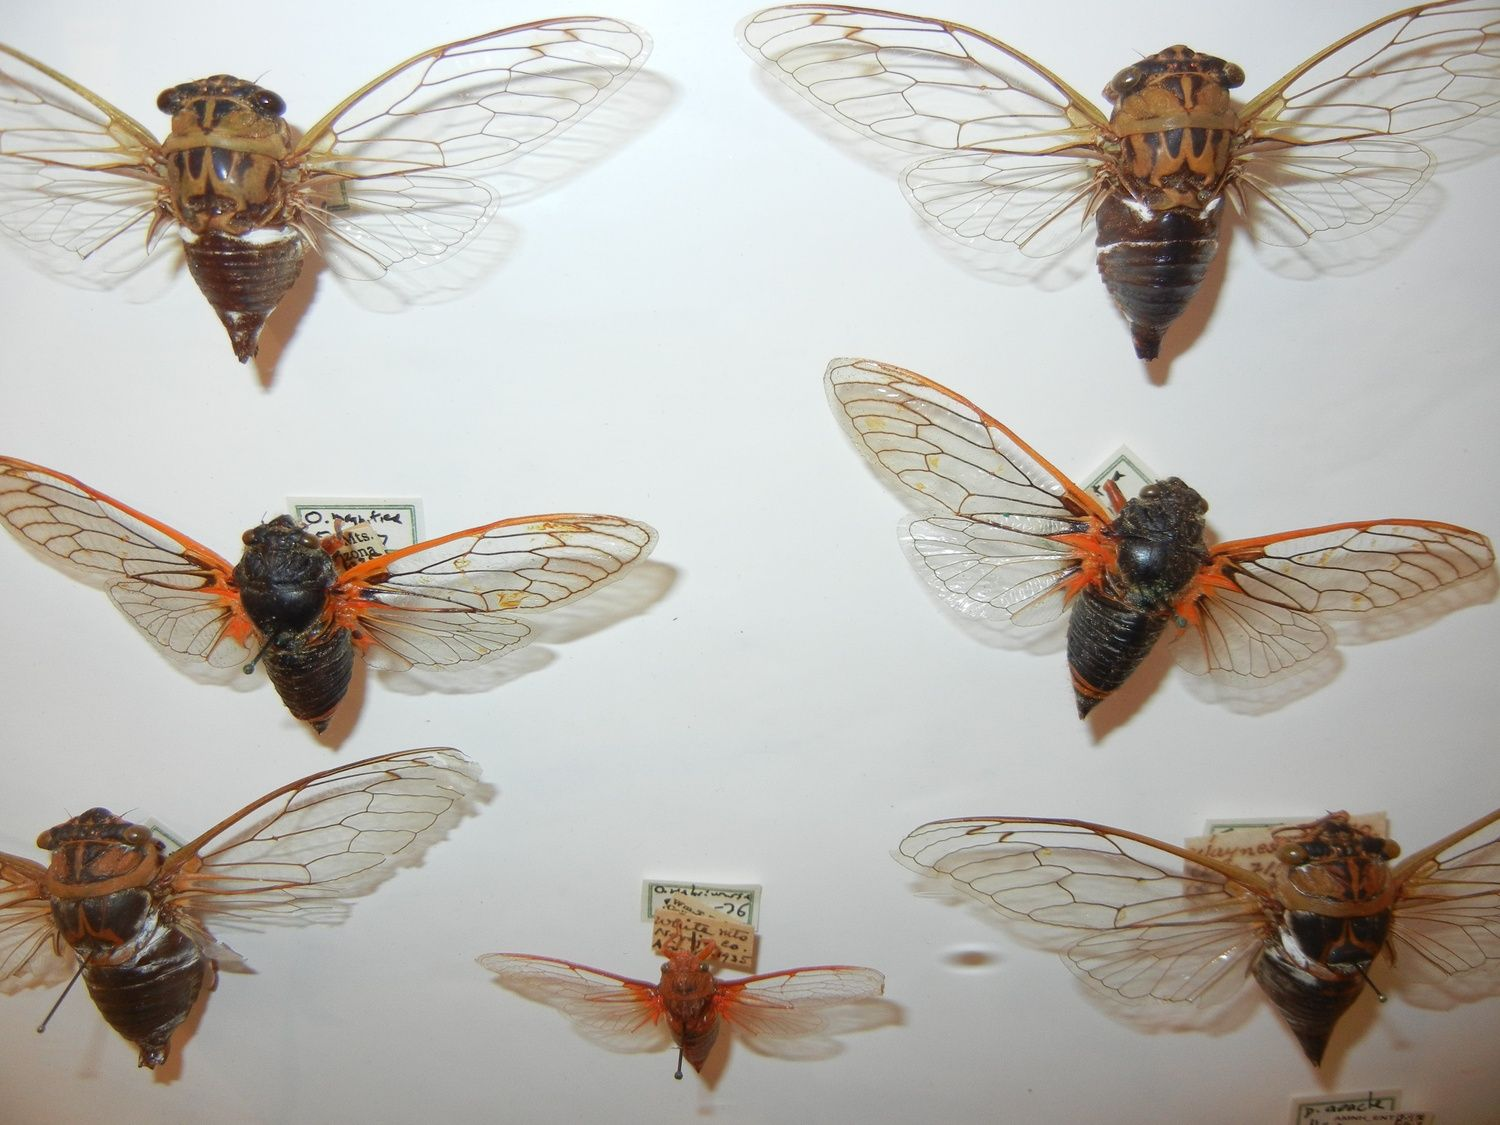 How To Collect And Display Insects Insect Collection Insects